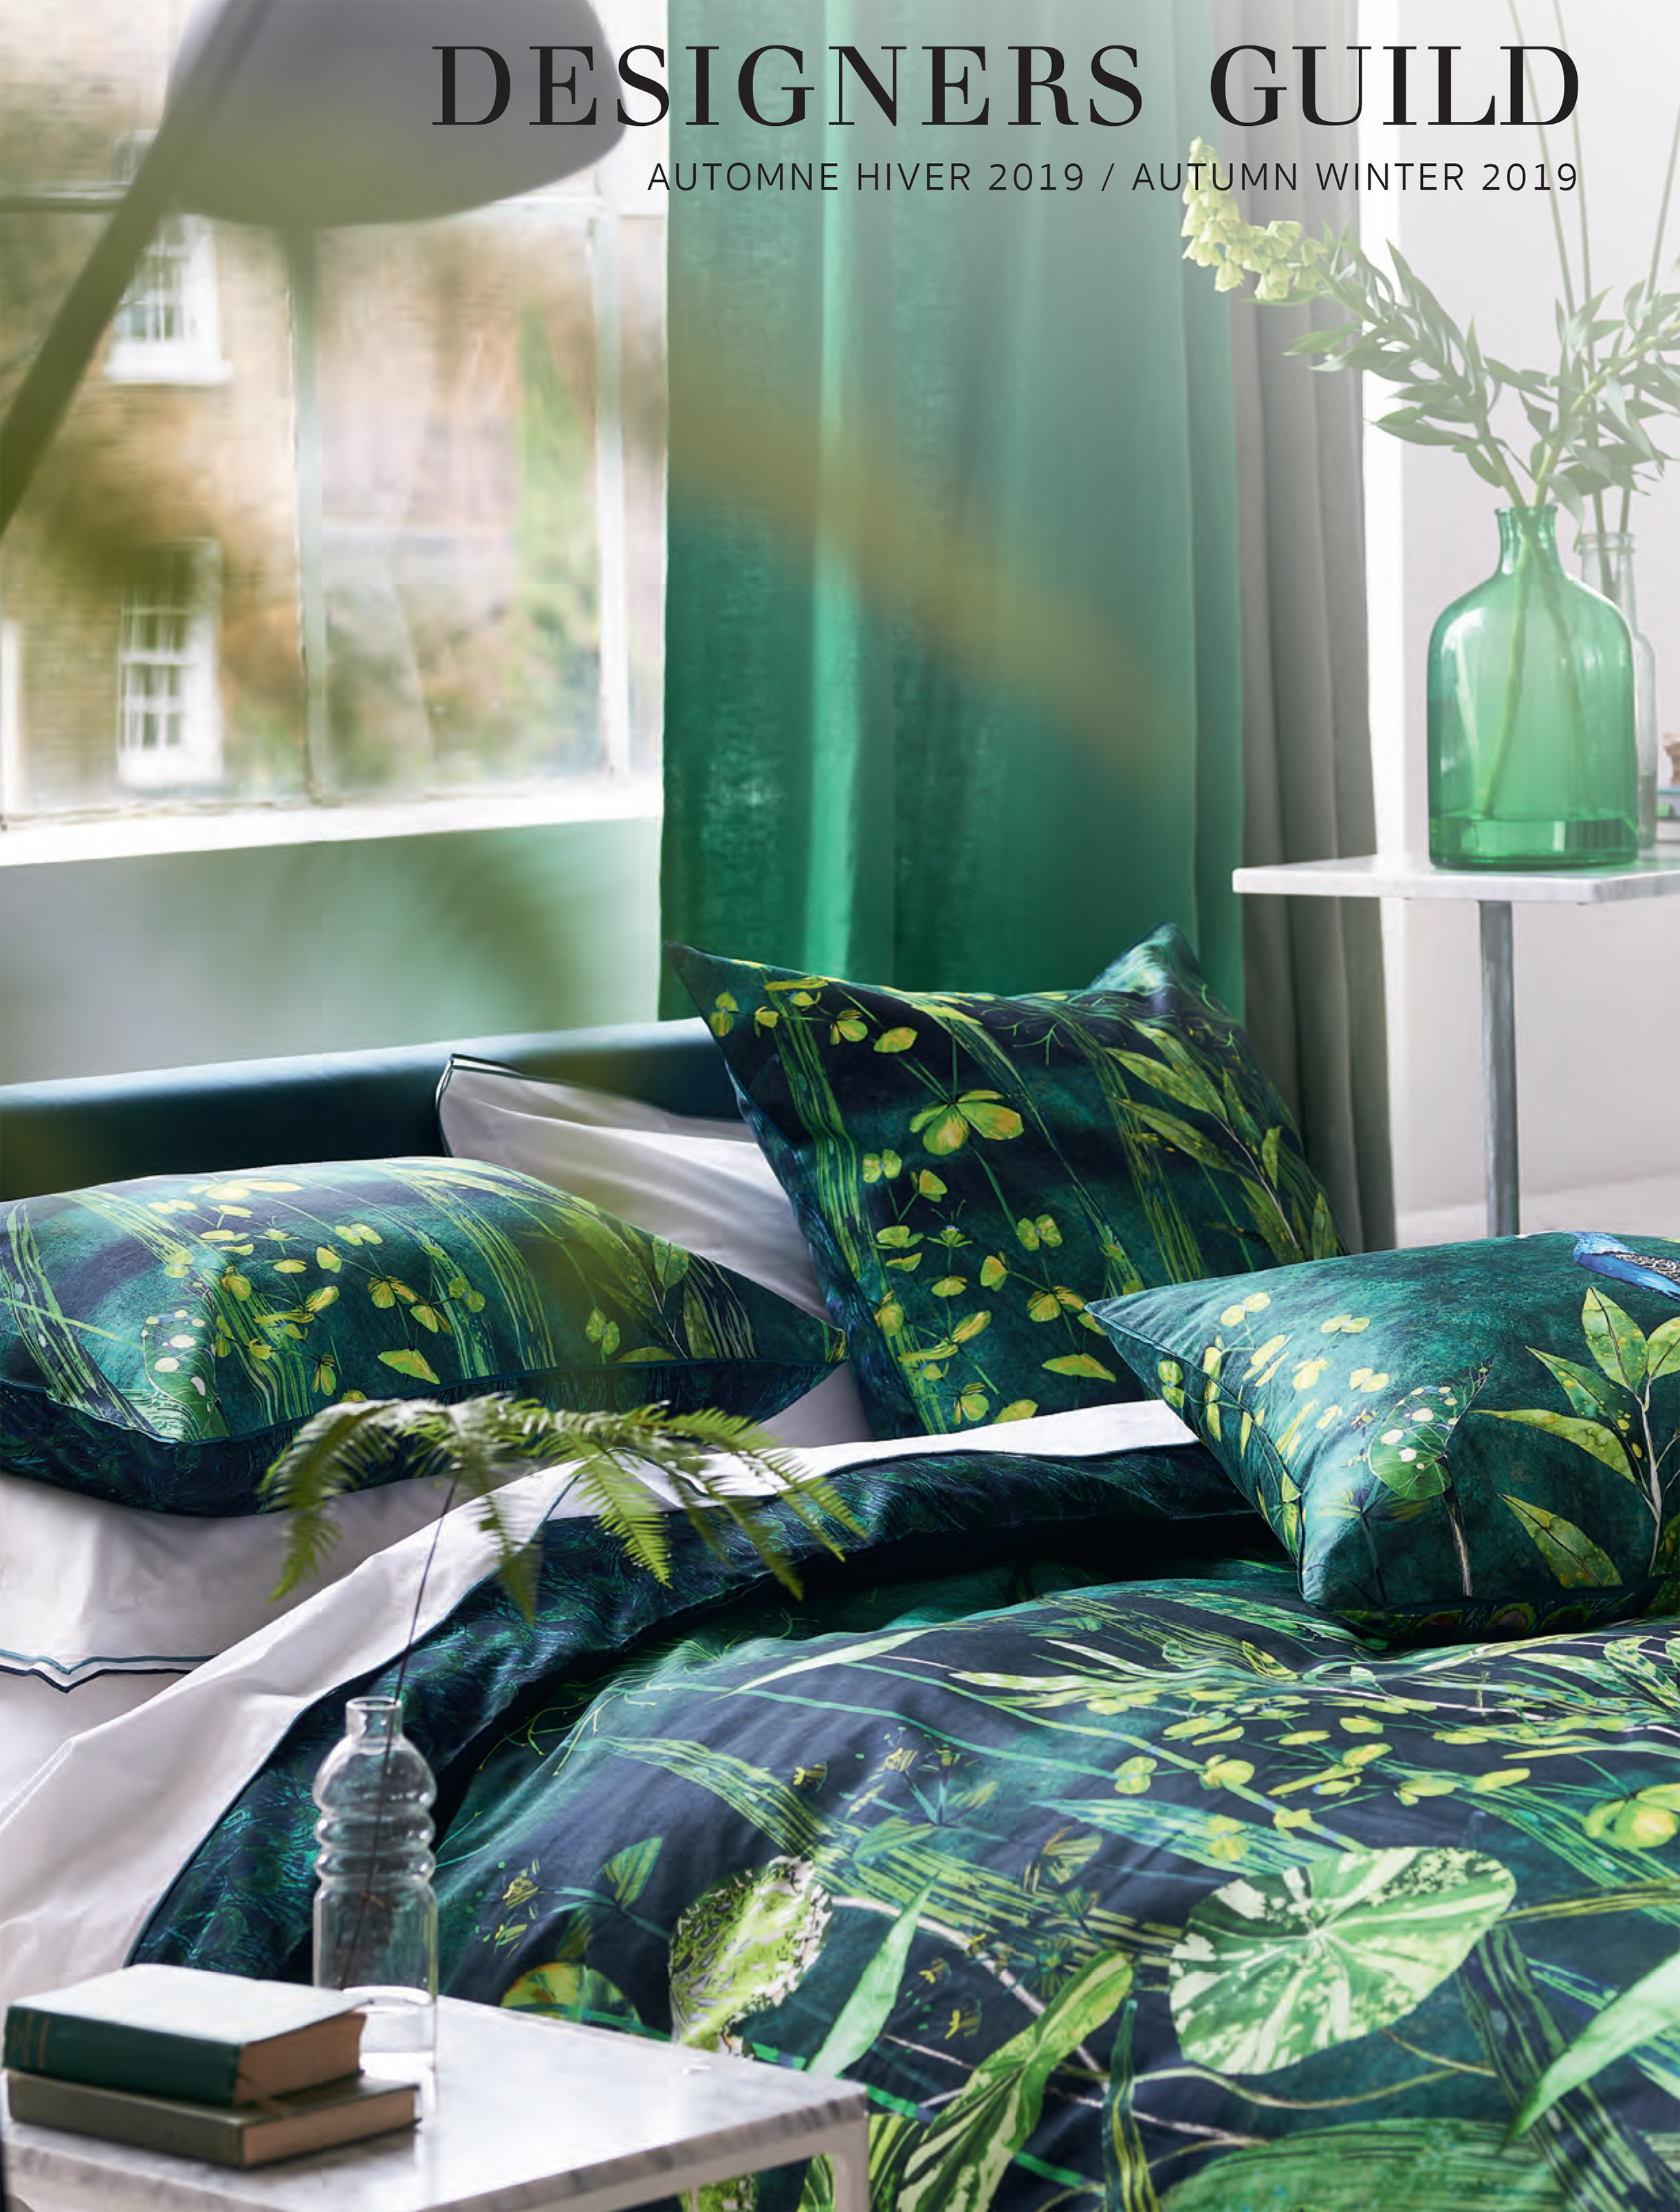 DESIGNERS GUILD BED LINEN AUTUMN/WINTER 2019